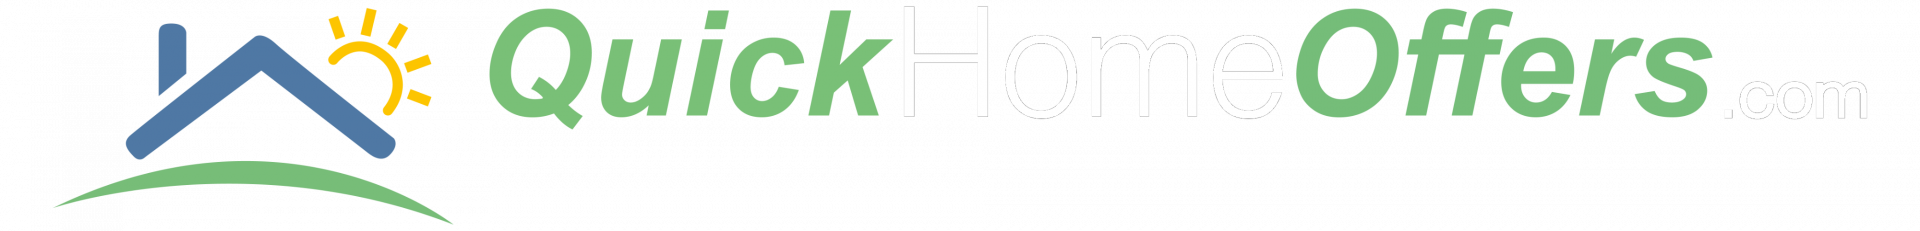 Quick Home Offers logo